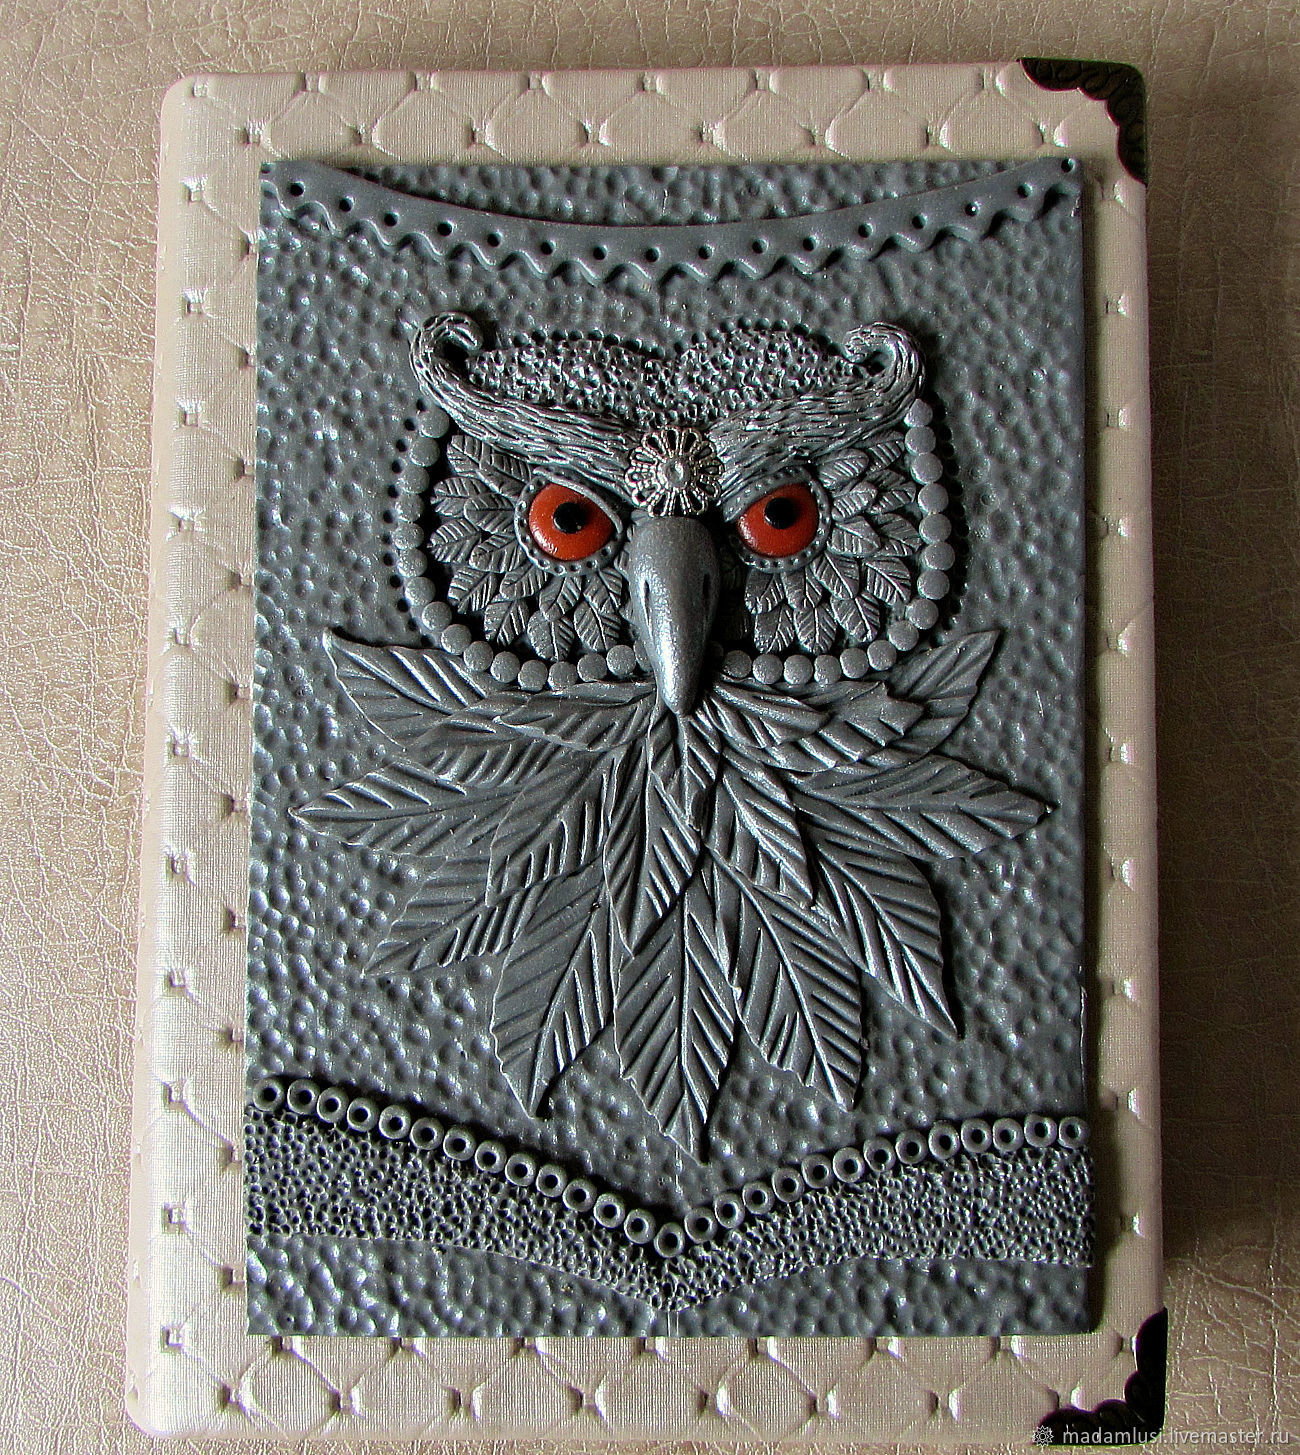 The notebook is made by hand from scratch with the Wise Owl. notebooks handmade. Notepad from scratch. Buy Notebook A6 handmade. Handmade.